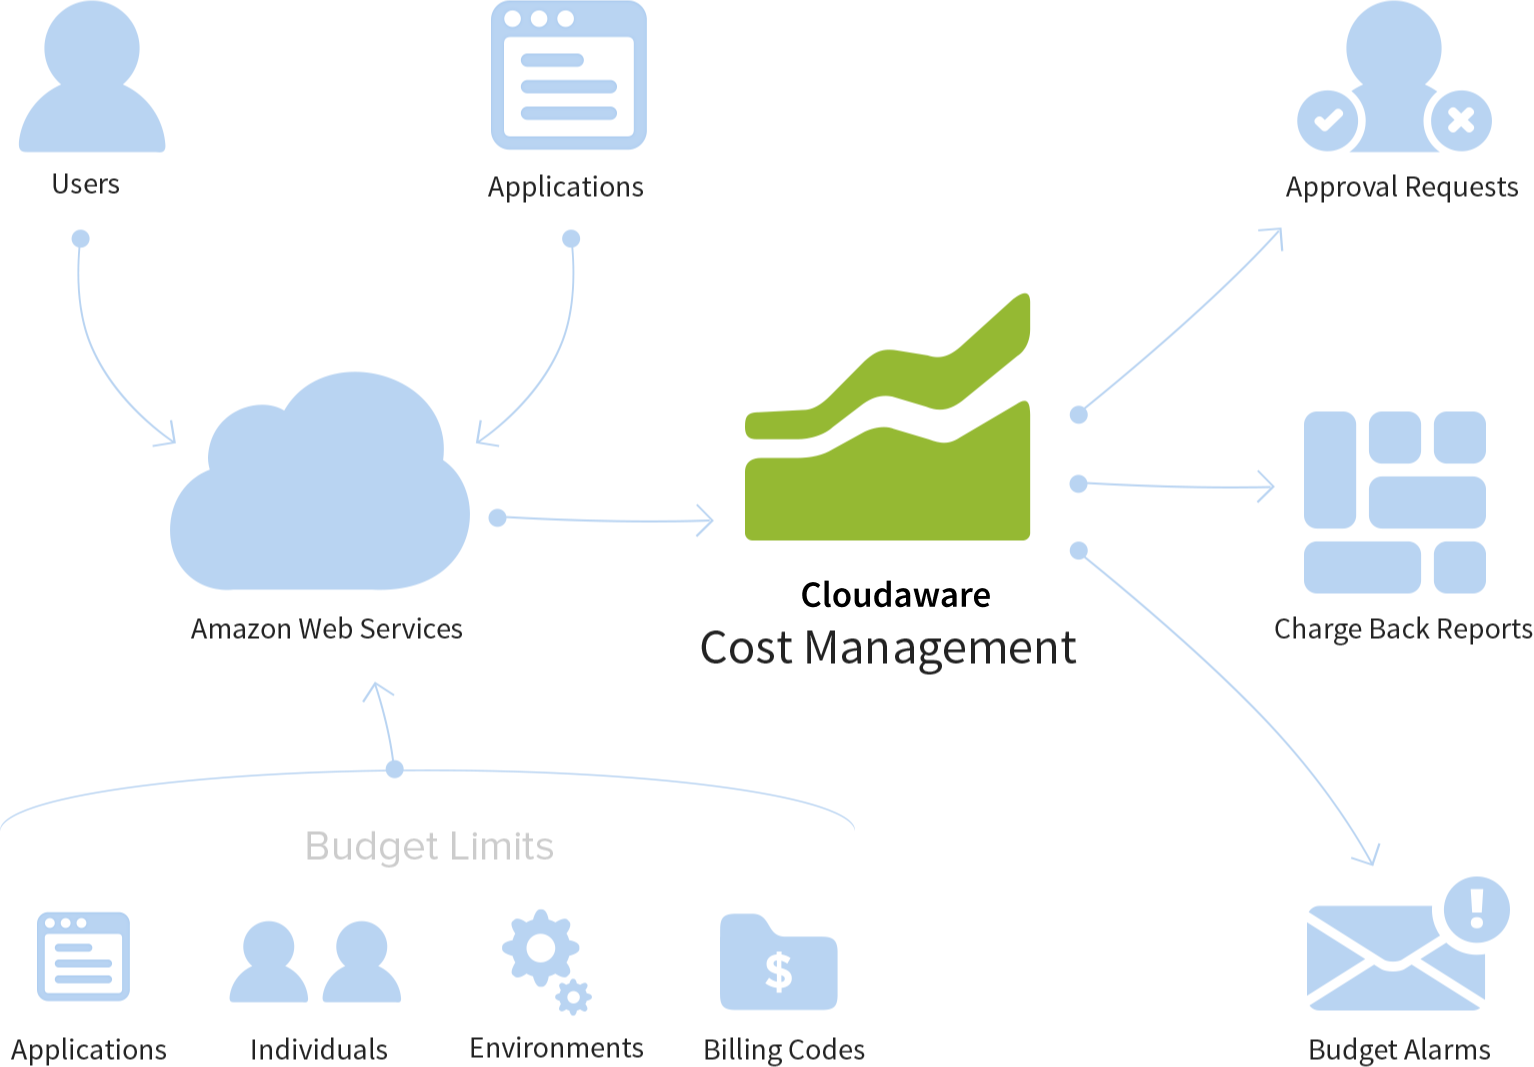 CloudAware Cost Management diagram